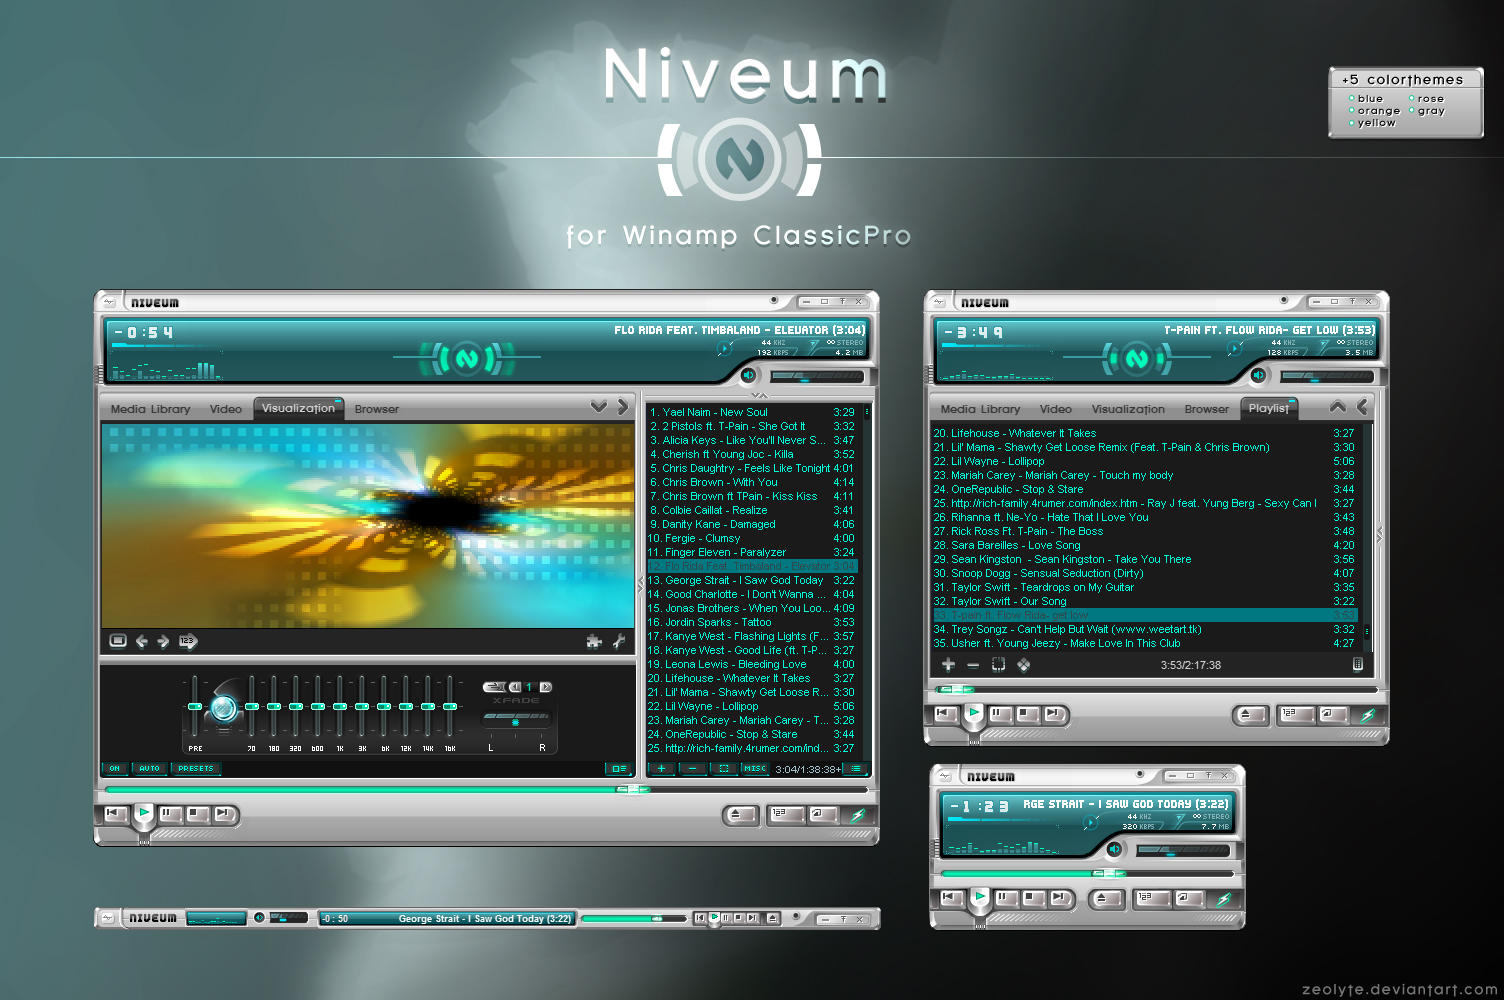 Winamp sexy nude skin free download sex download